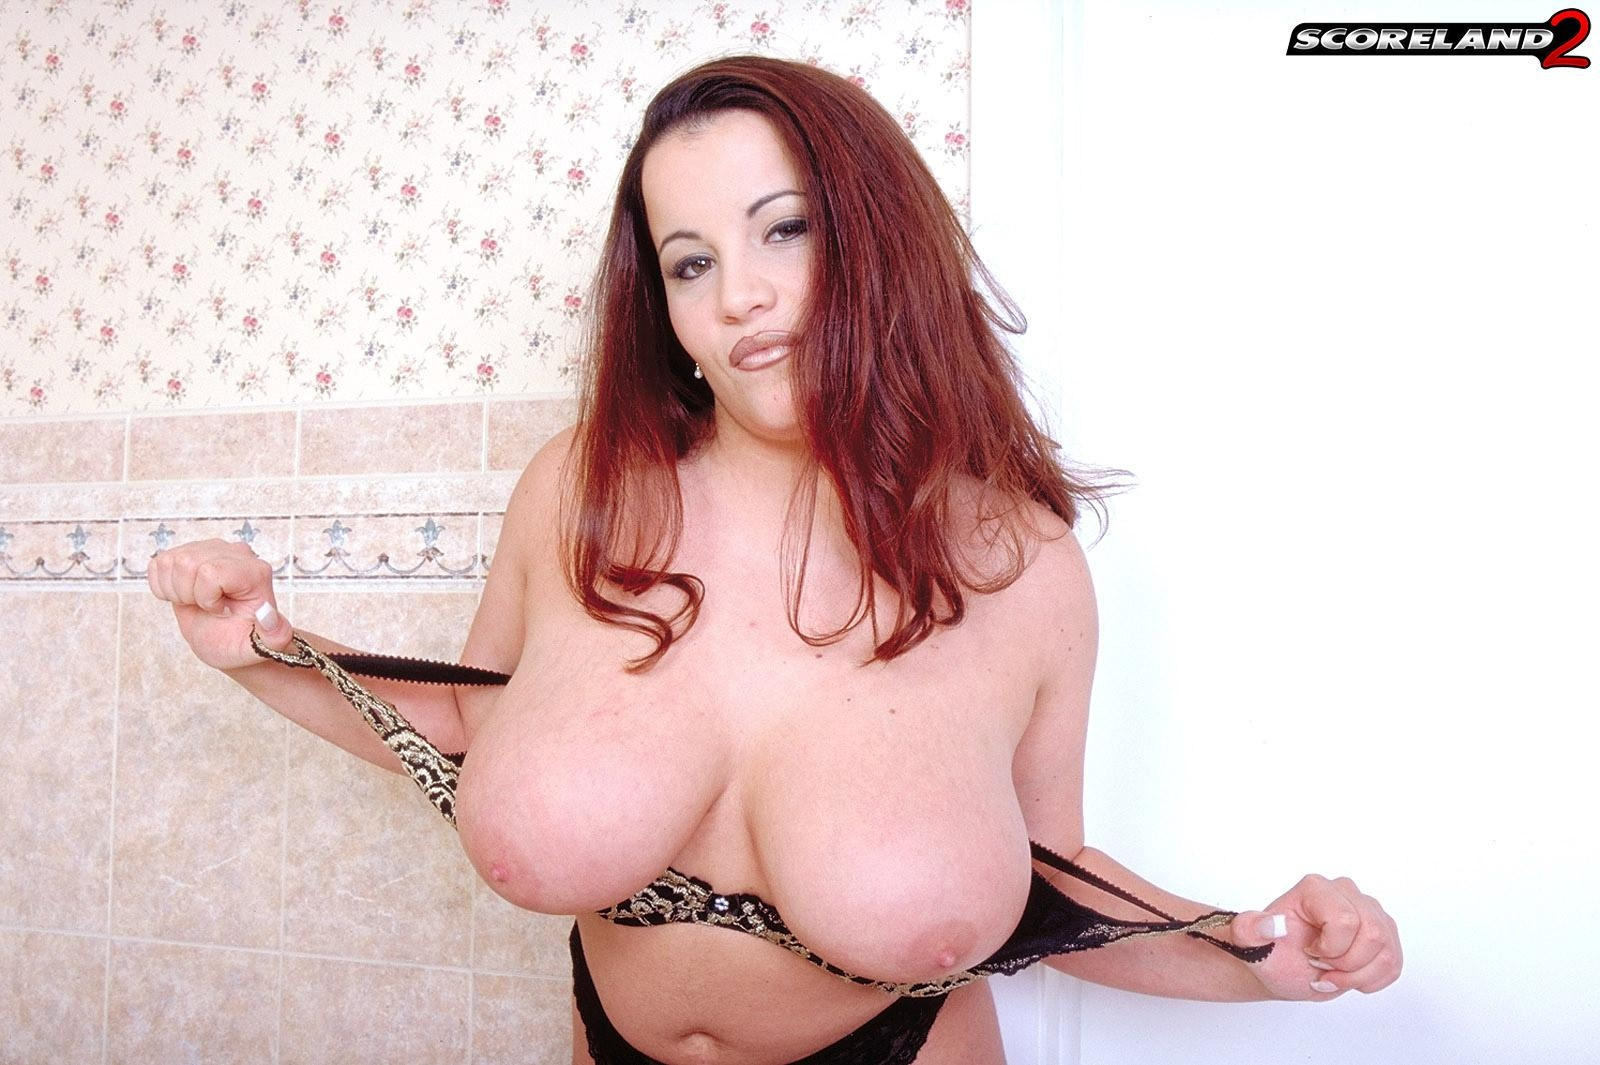 Redhead MILF Annie Swanson wets her huge boobs in the bathtub during solo action